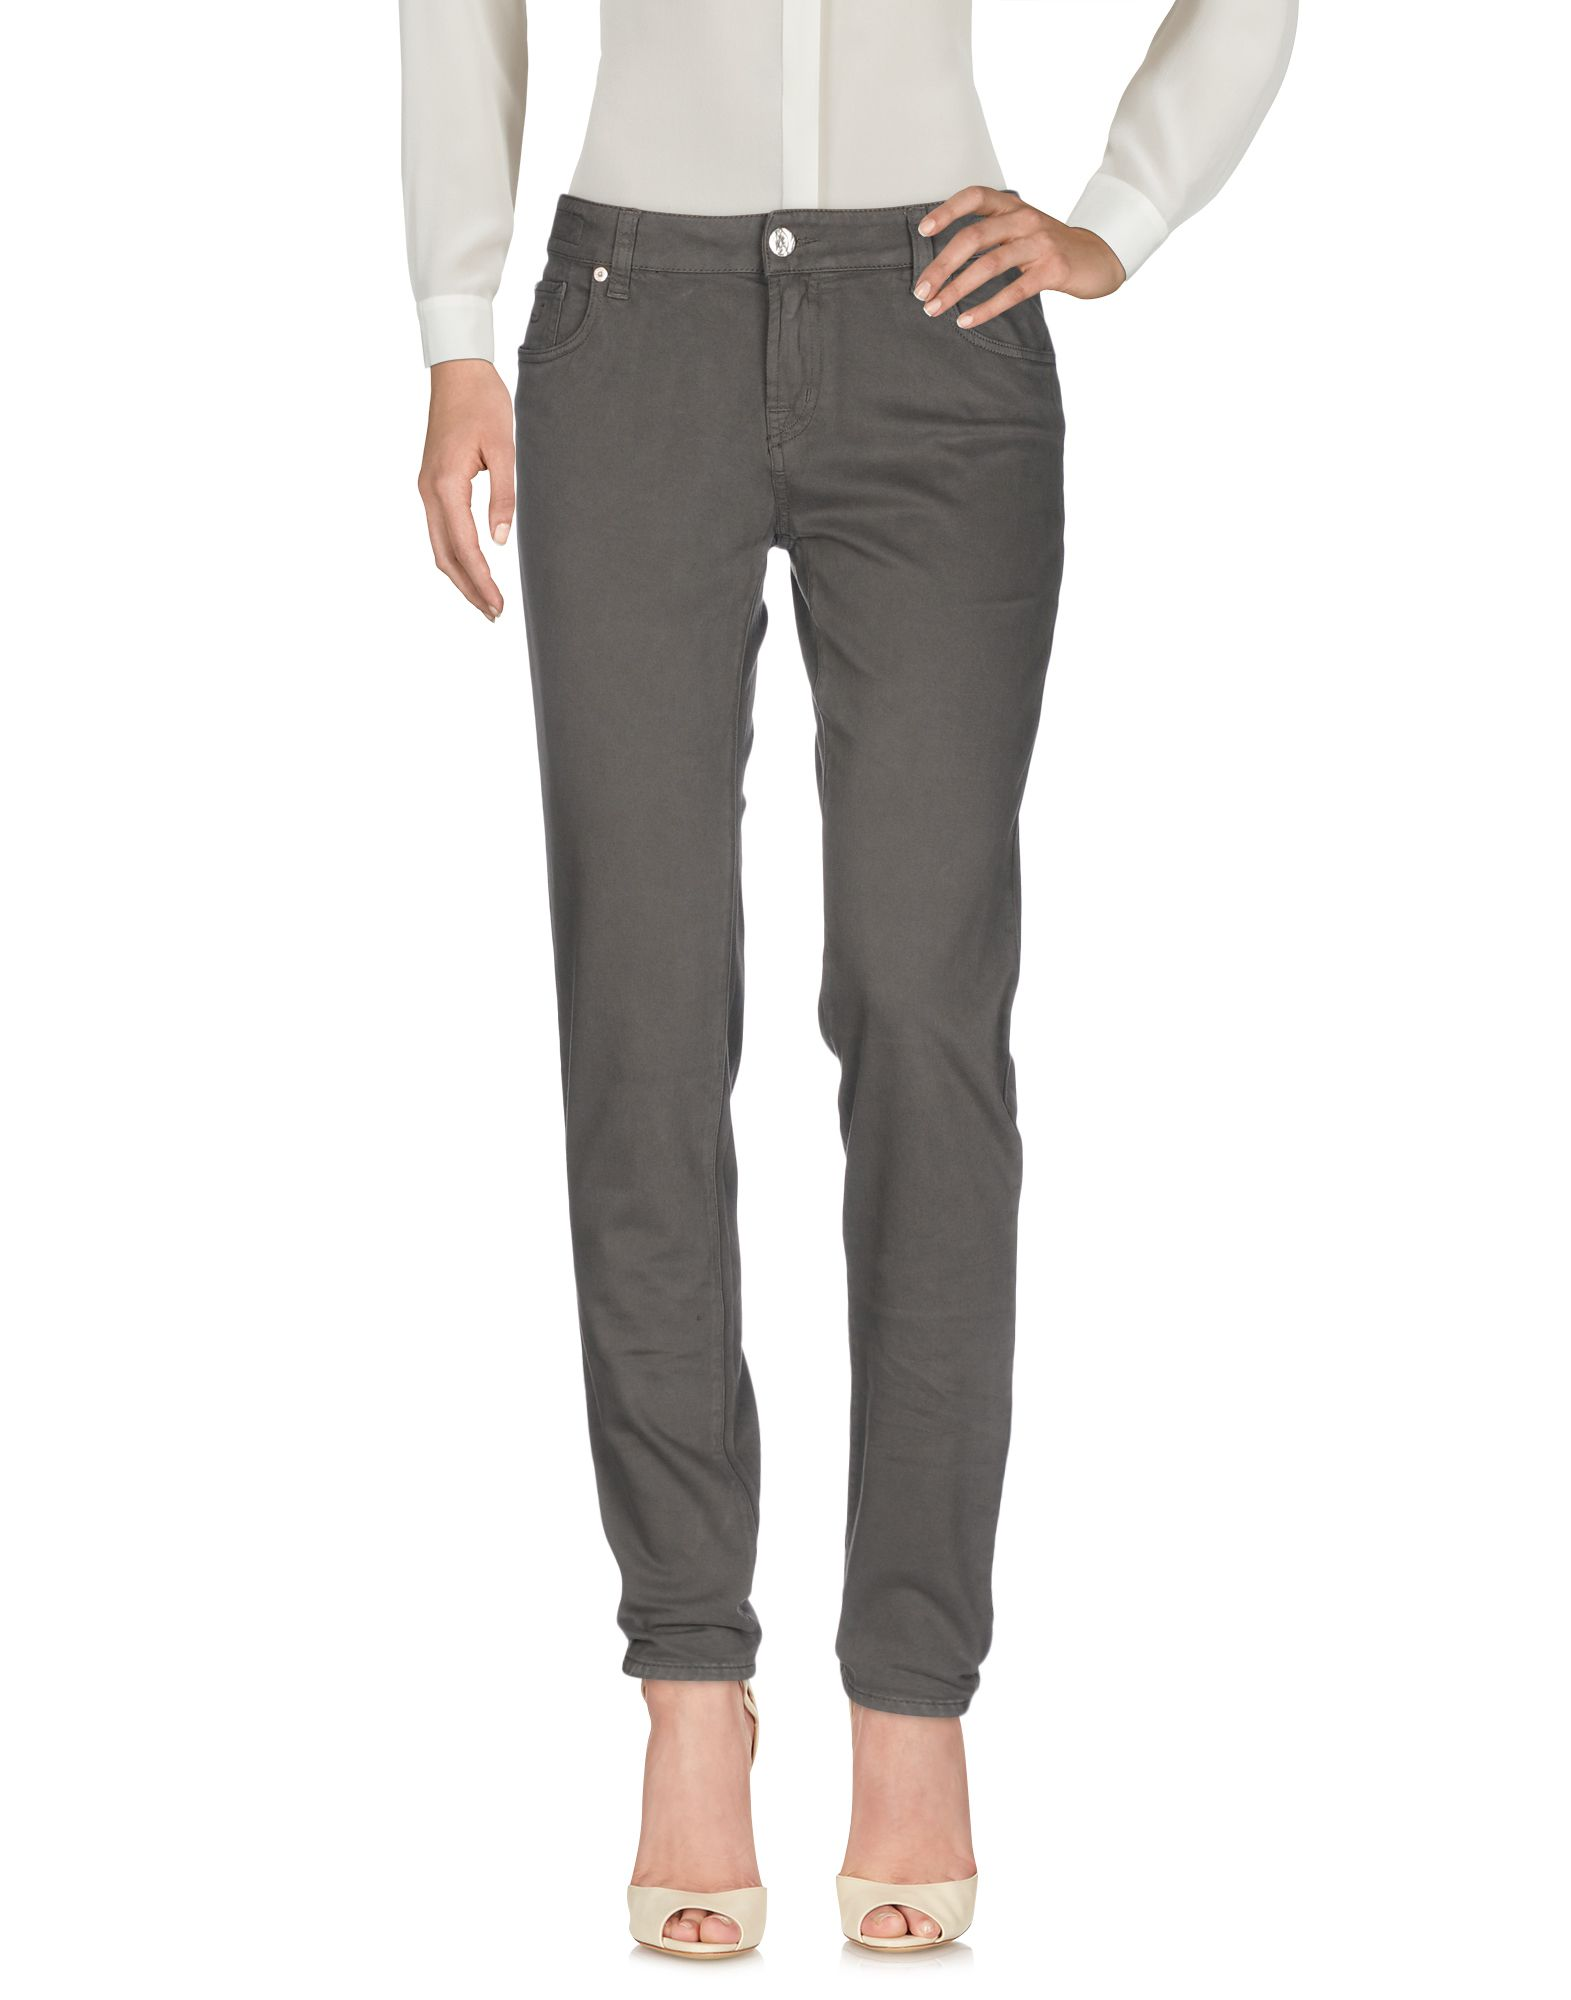 Pantalone Jacob Cohёn Donna - Acquista online su fA11kC5s